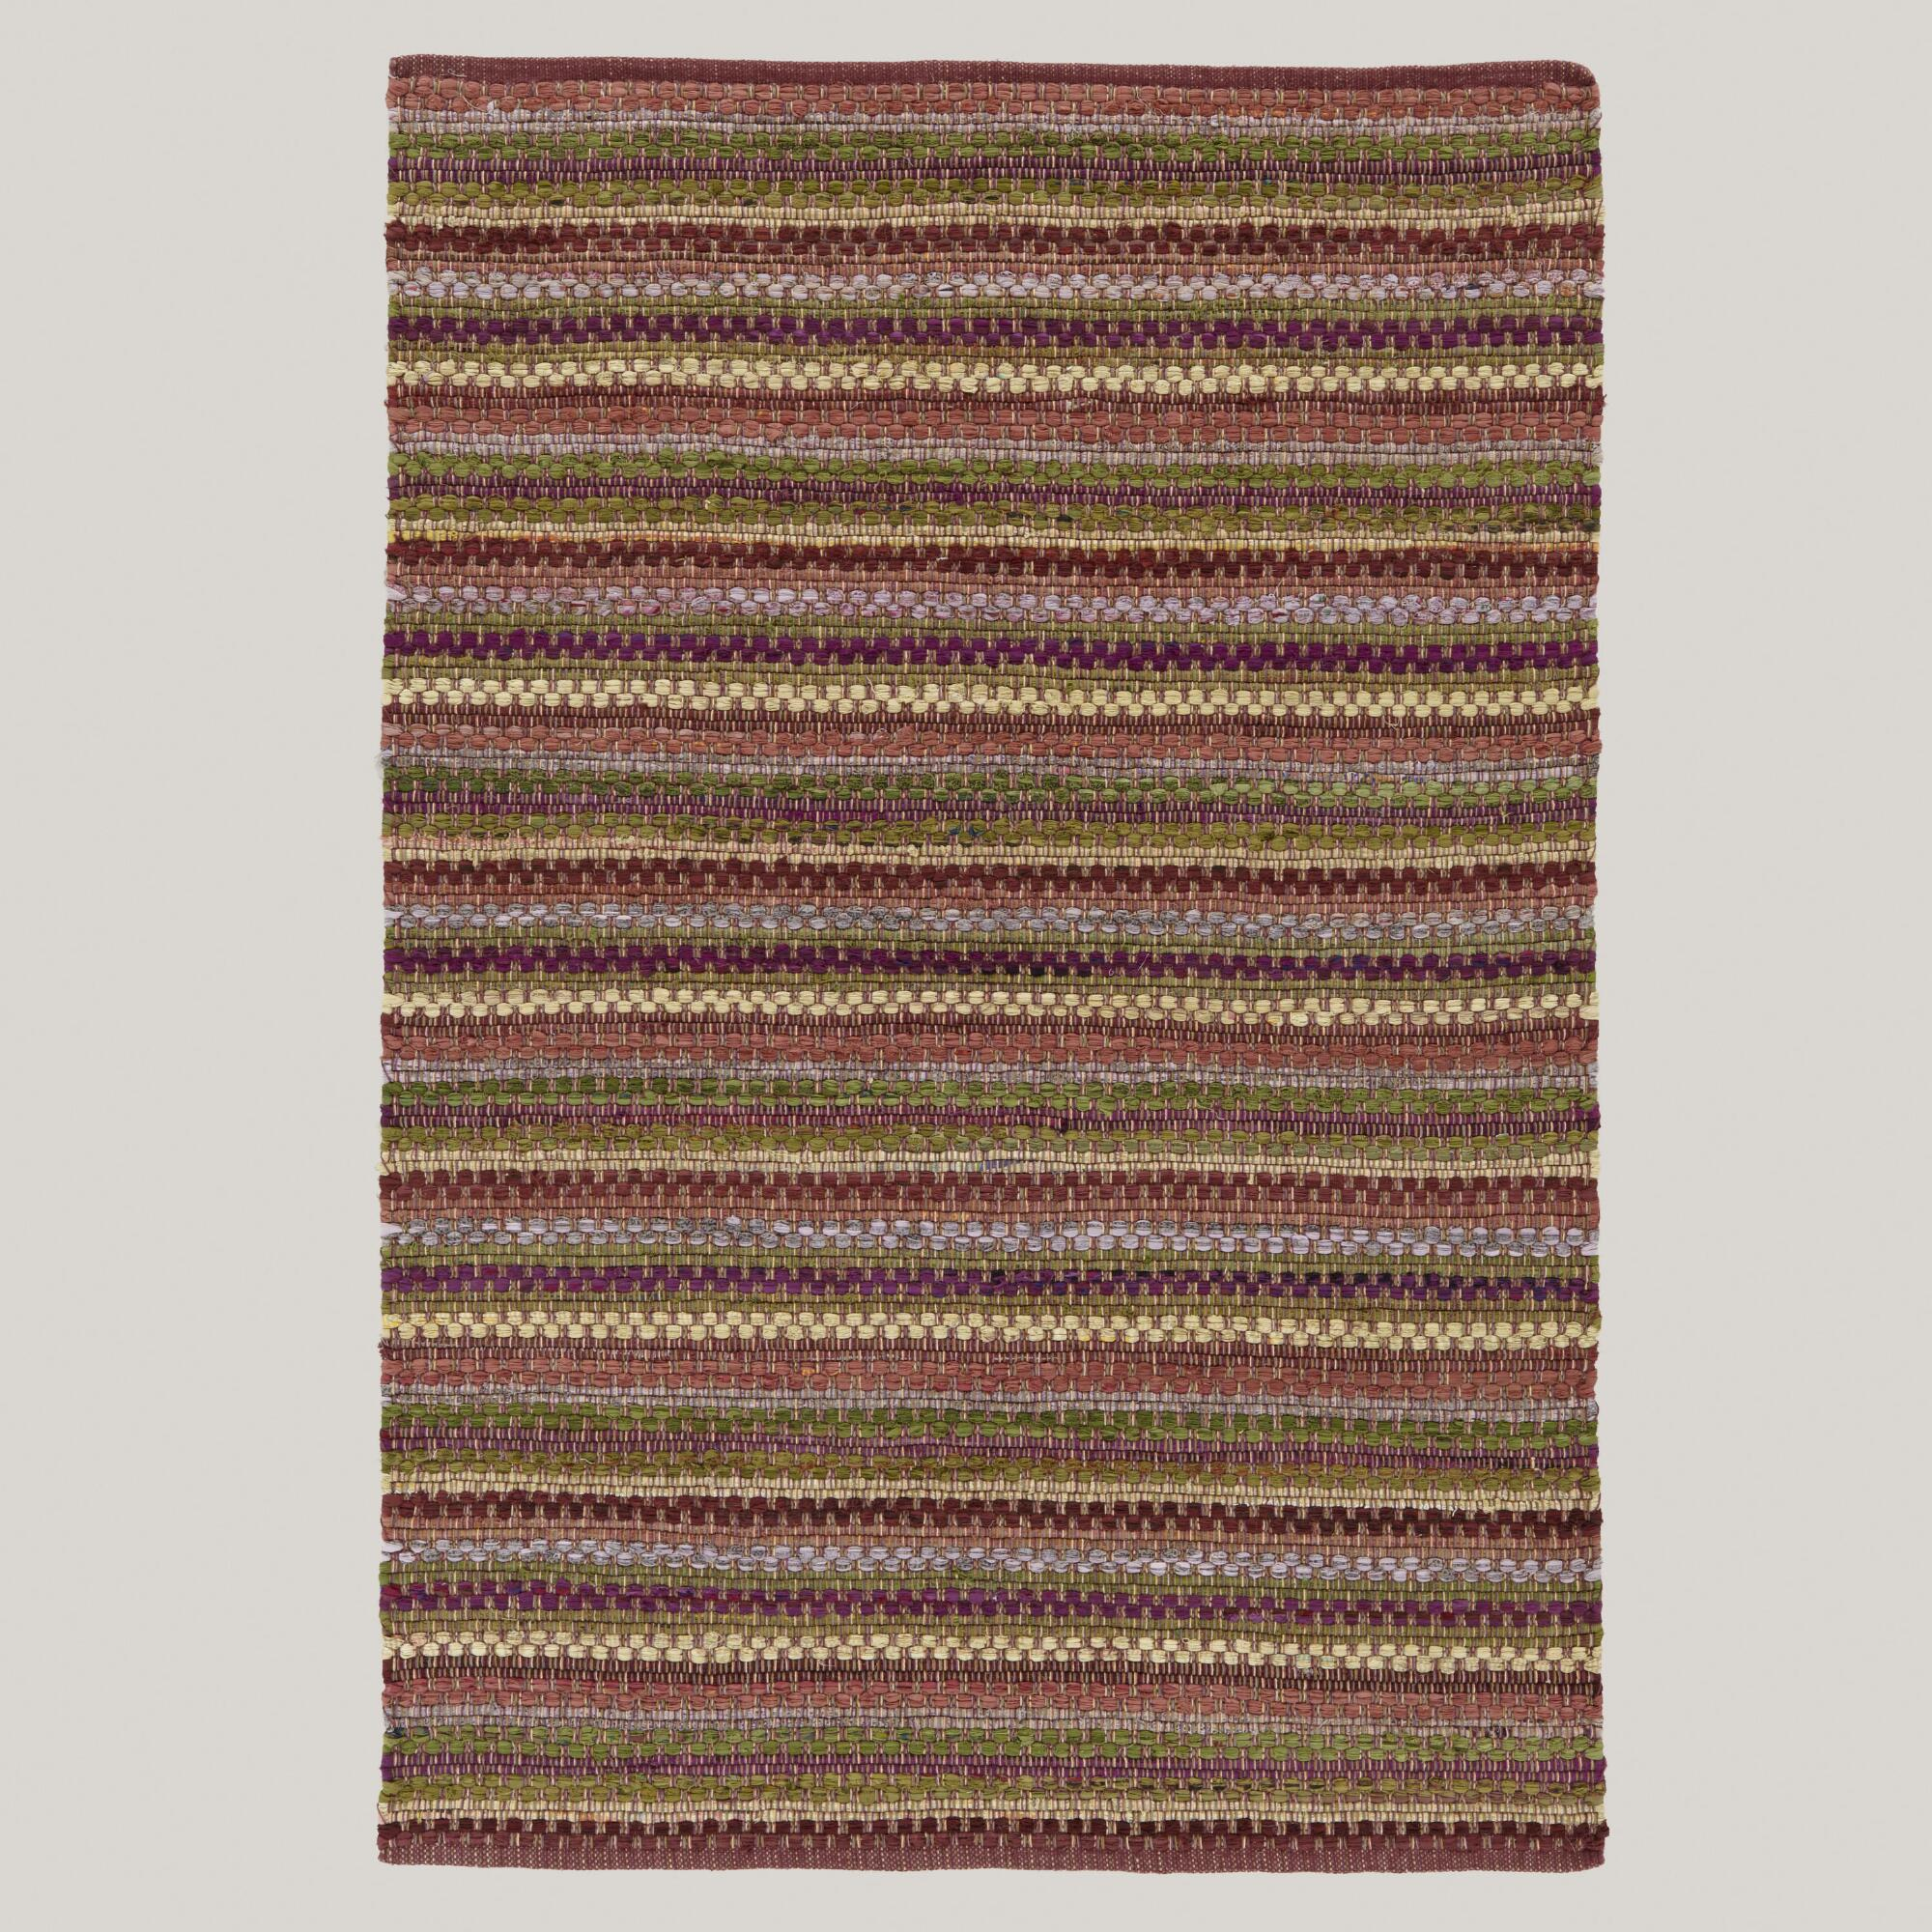 4'x6' Plum Napa Chindi Rug